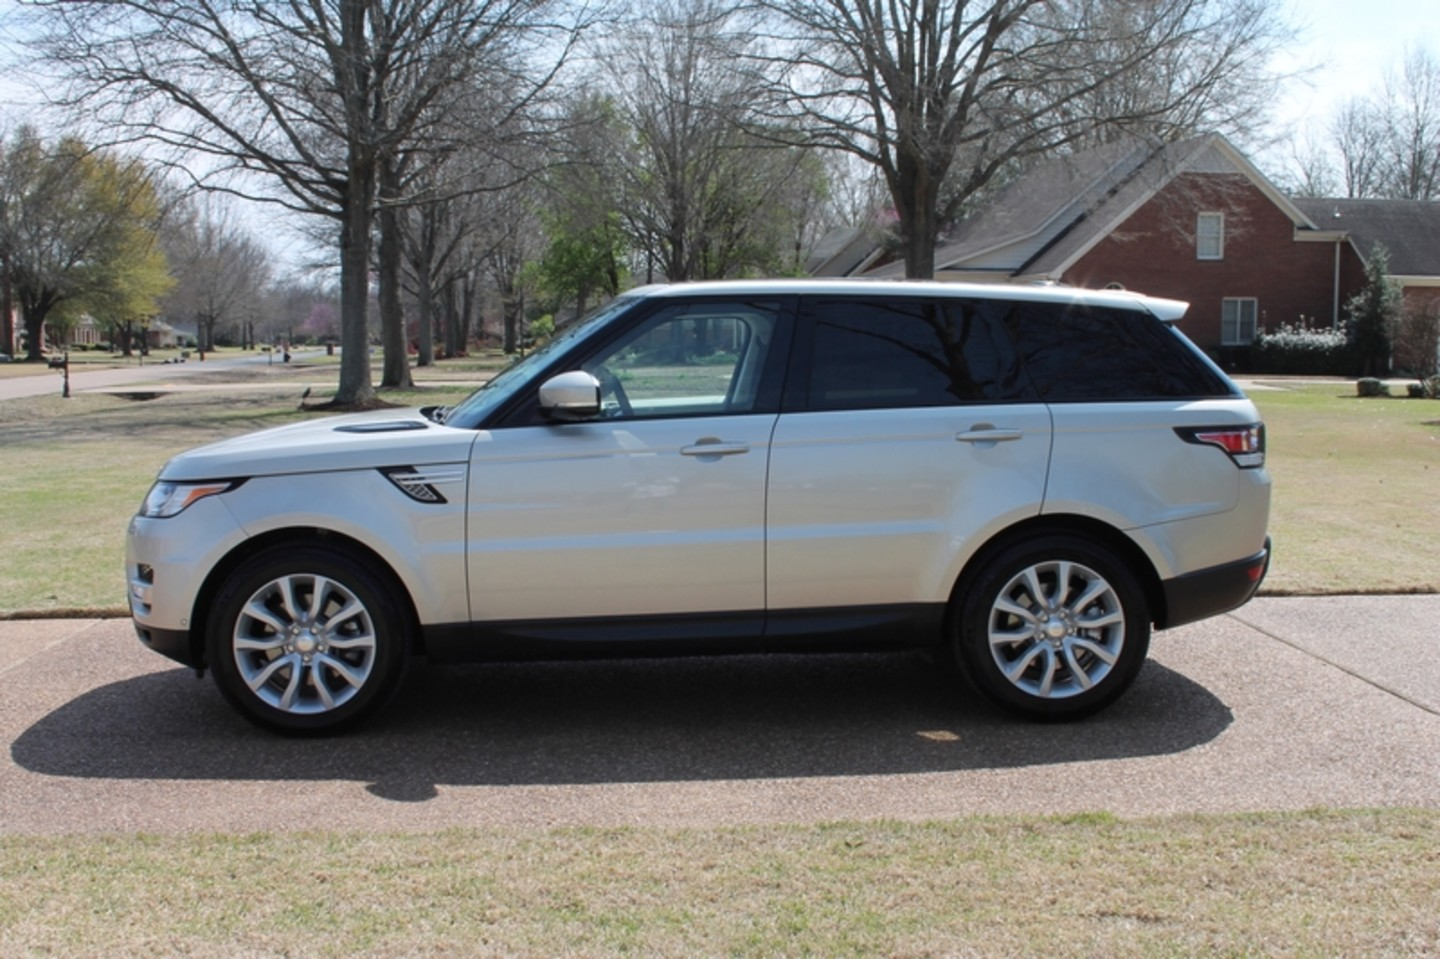 2014 land rover range rover sport hse supercharged price used cars memphis hallum motors. Black Bedroom Furniture Sets. Home Design Ideas